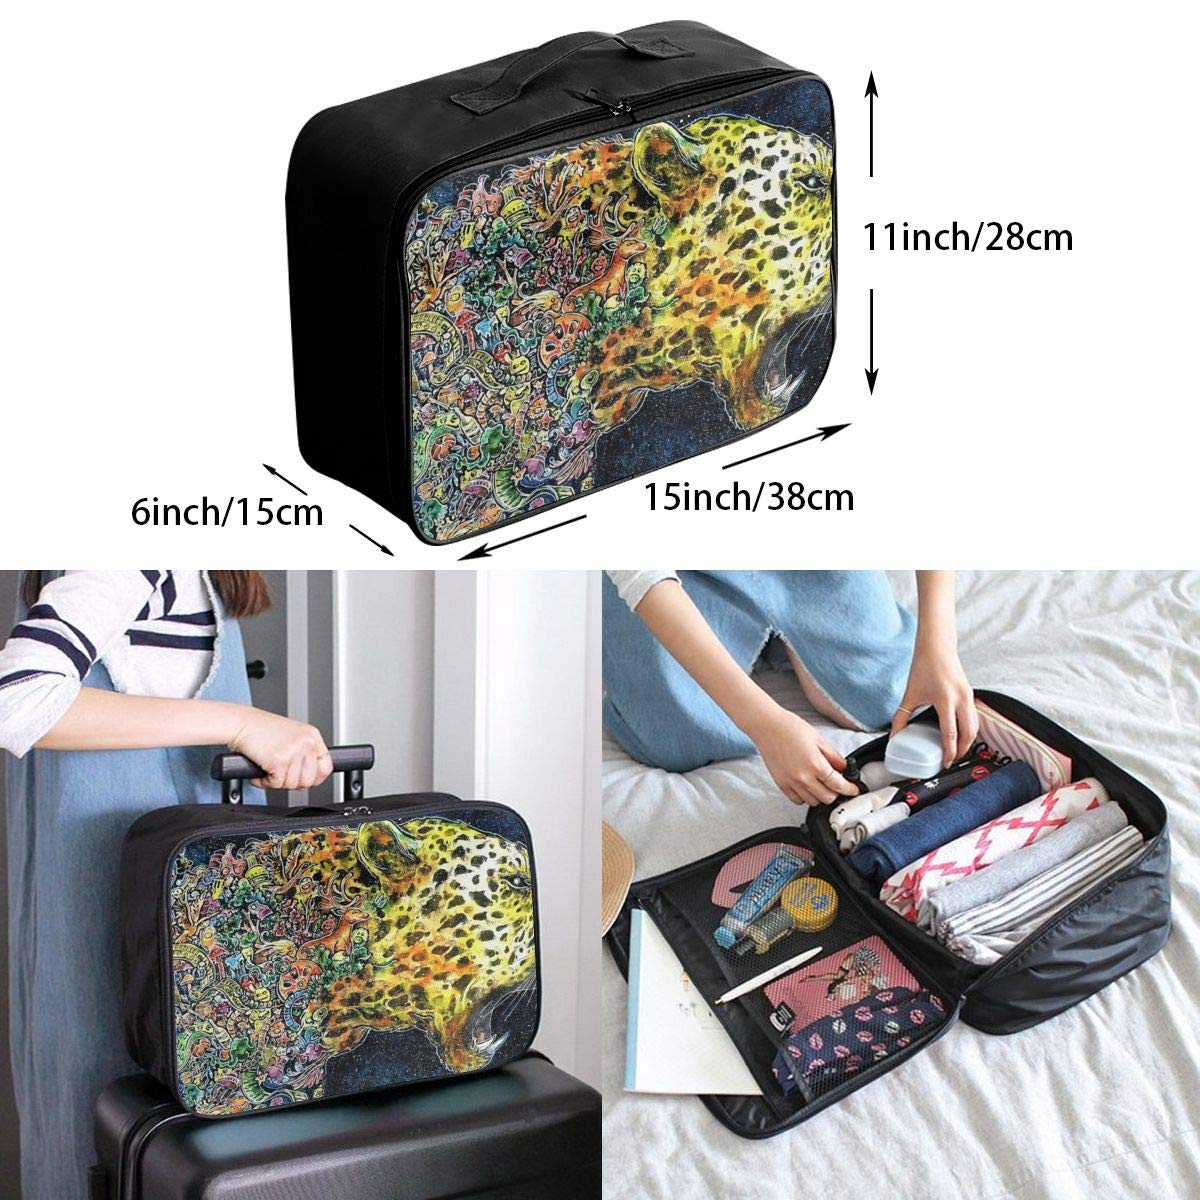 Roaring Colorful Cheetah Travel Lightweight Waterproof Folding Storage Portable Luggage Duffle Tote Bag Large Capacity In Trolley Handle Bags 6x11x15 Inch